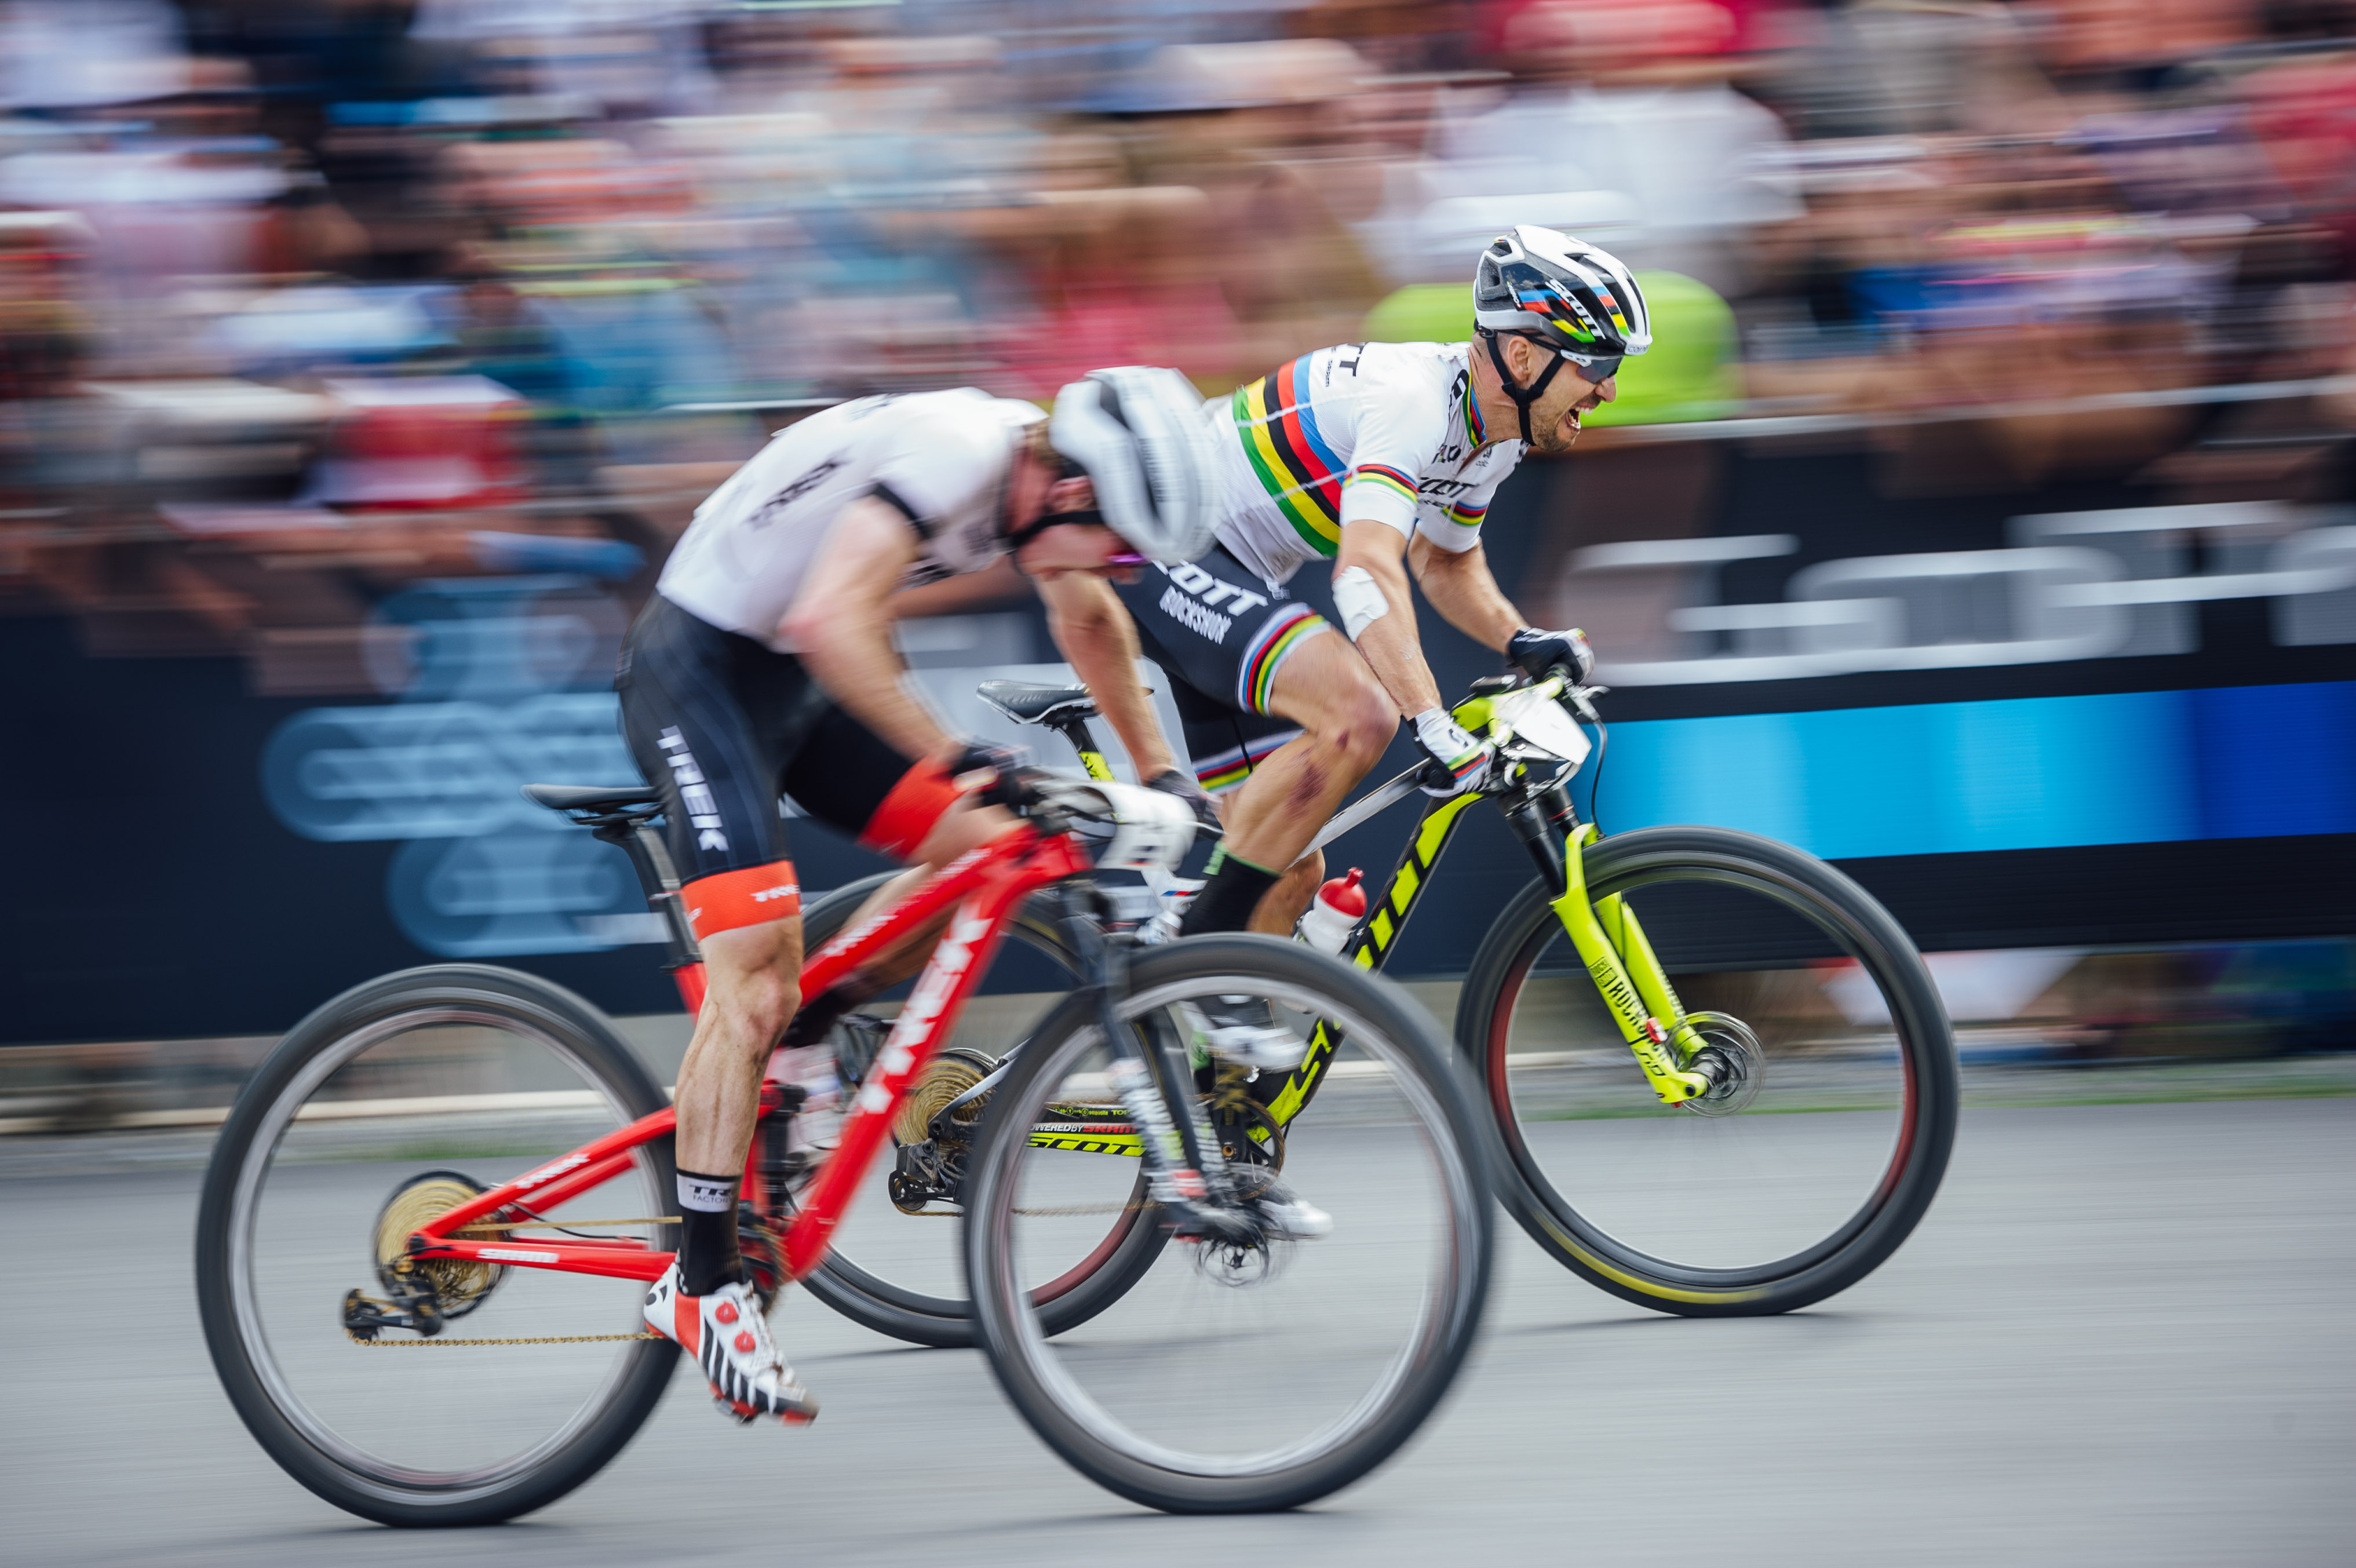 THRILLING CYCLING BATTLES ON THE FINISH LINE